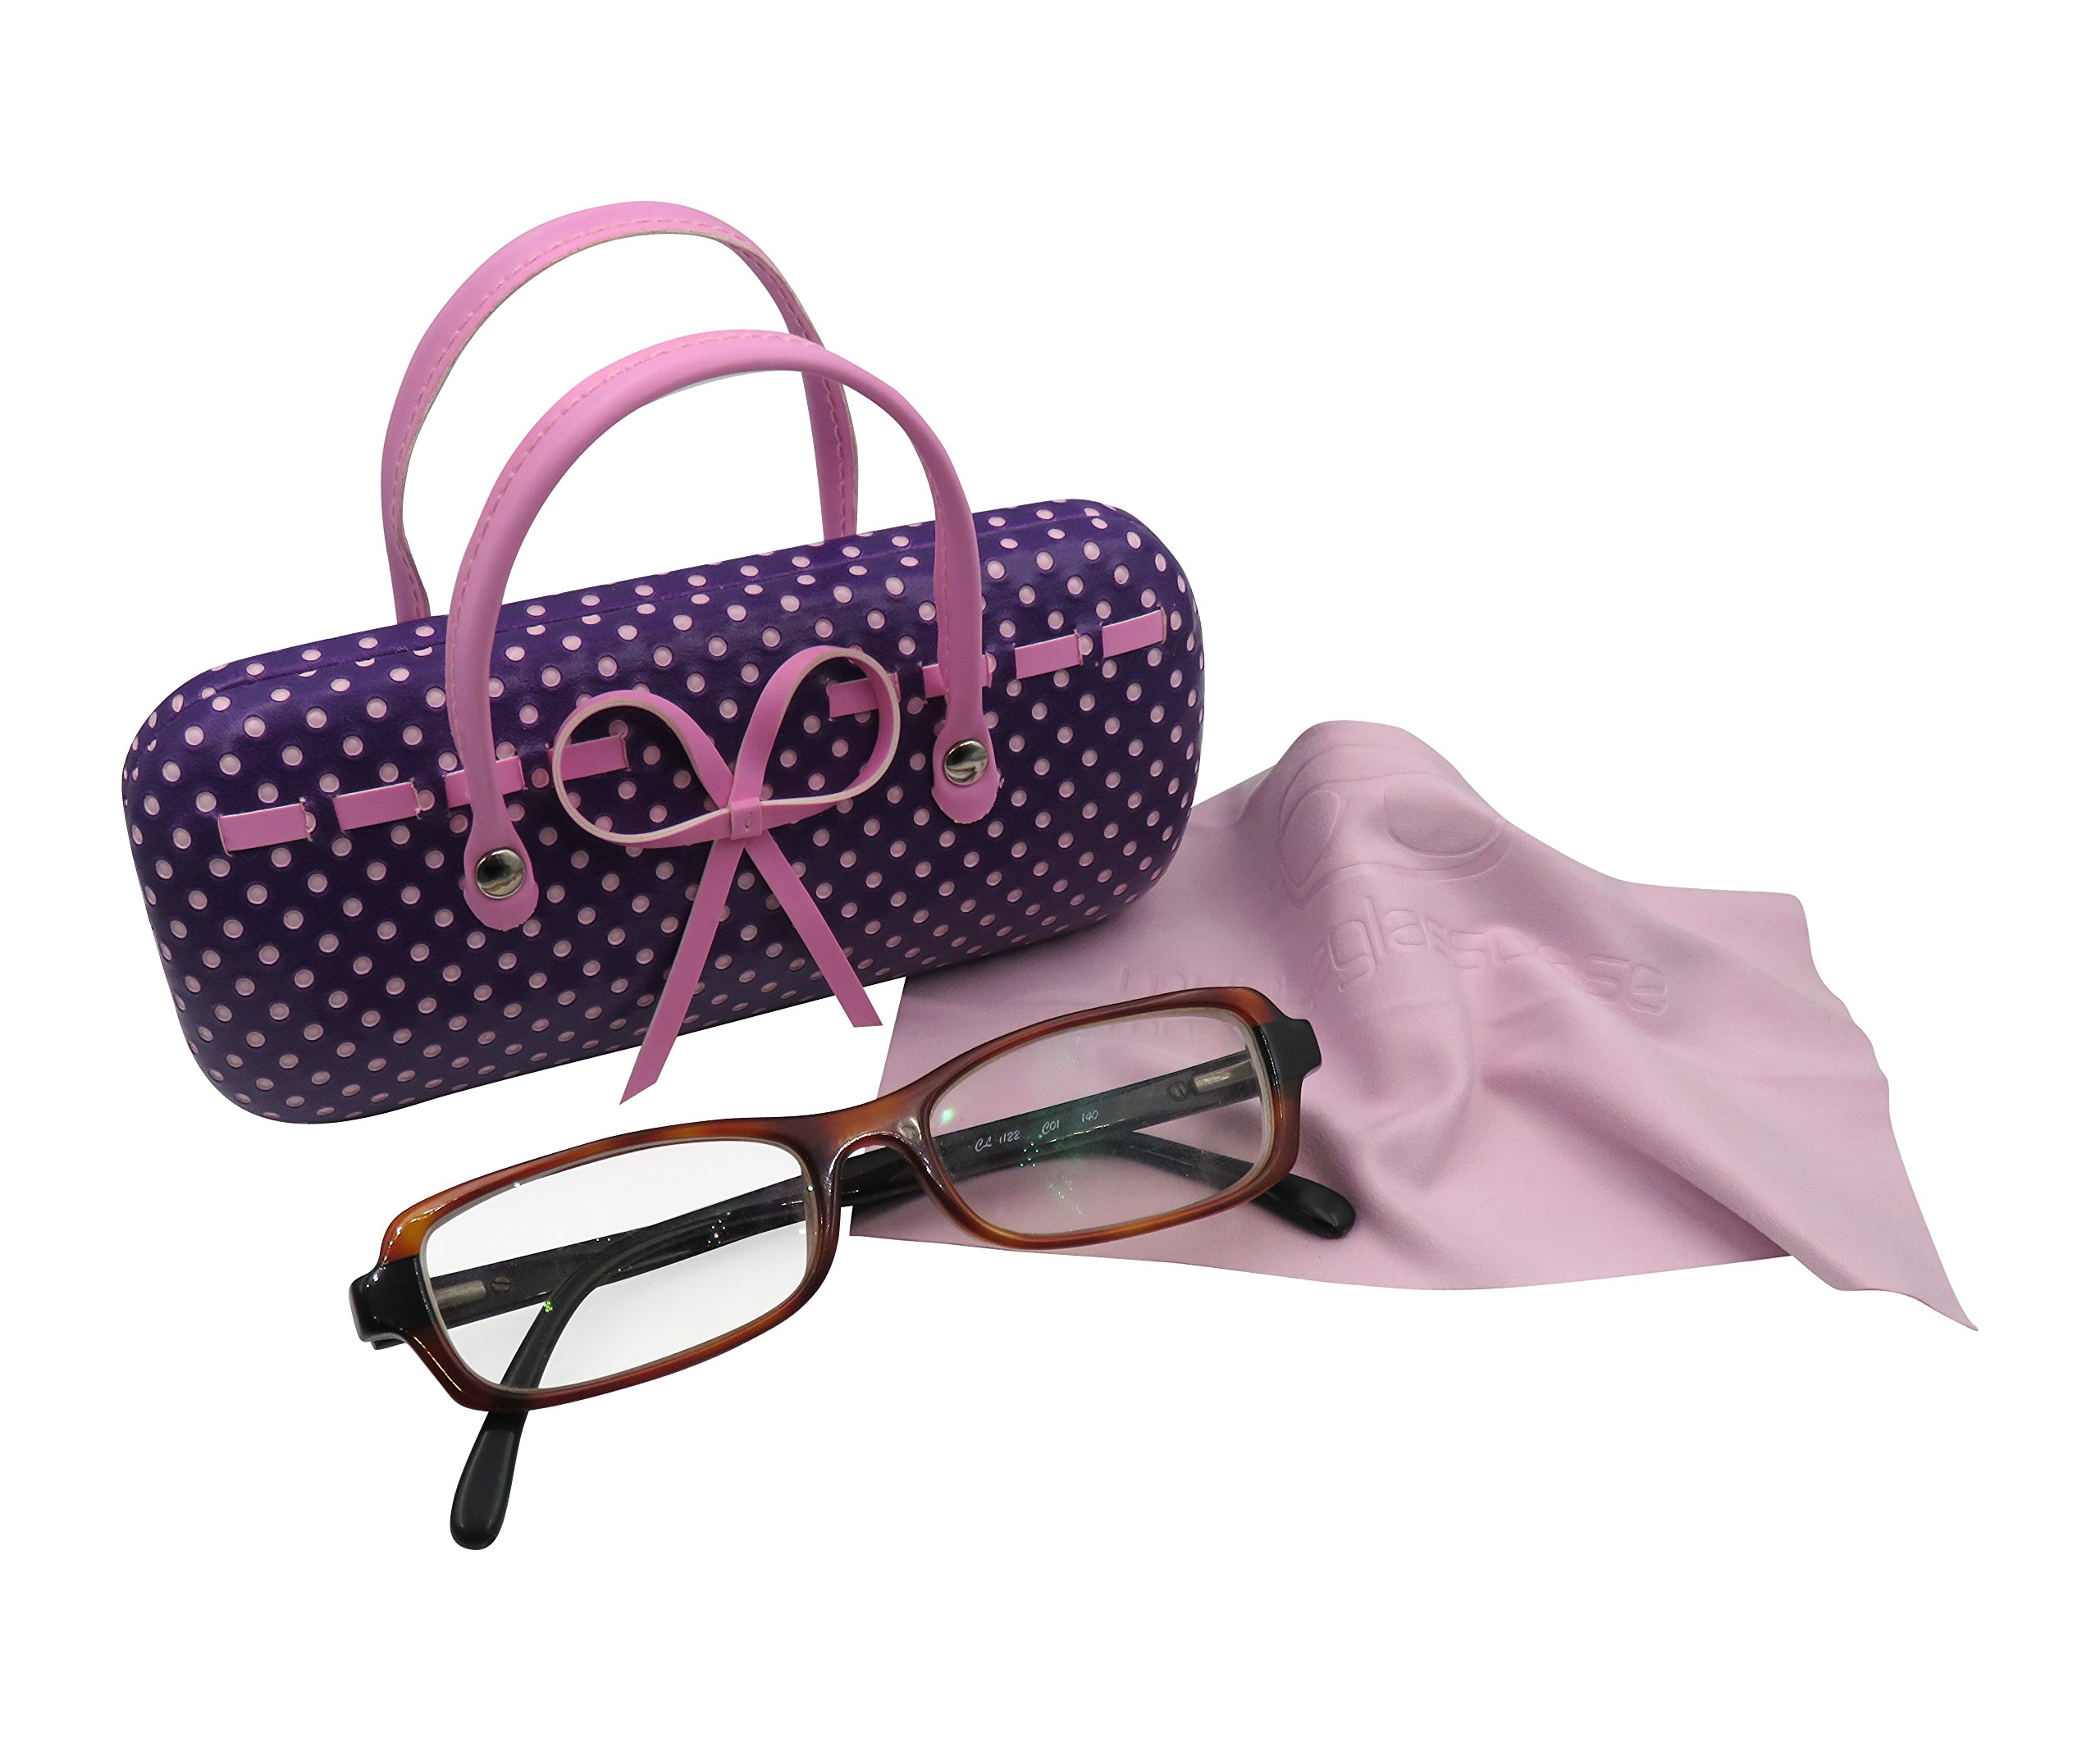 Purple Hard Protective Eyeglass Case with handles Mini handbag Eyeglass Case with cleaning cloth for Medium frames Women & Girls Small accessories| AS12TG Polka Dots Purple by MyEyeglassCase (Image #4)